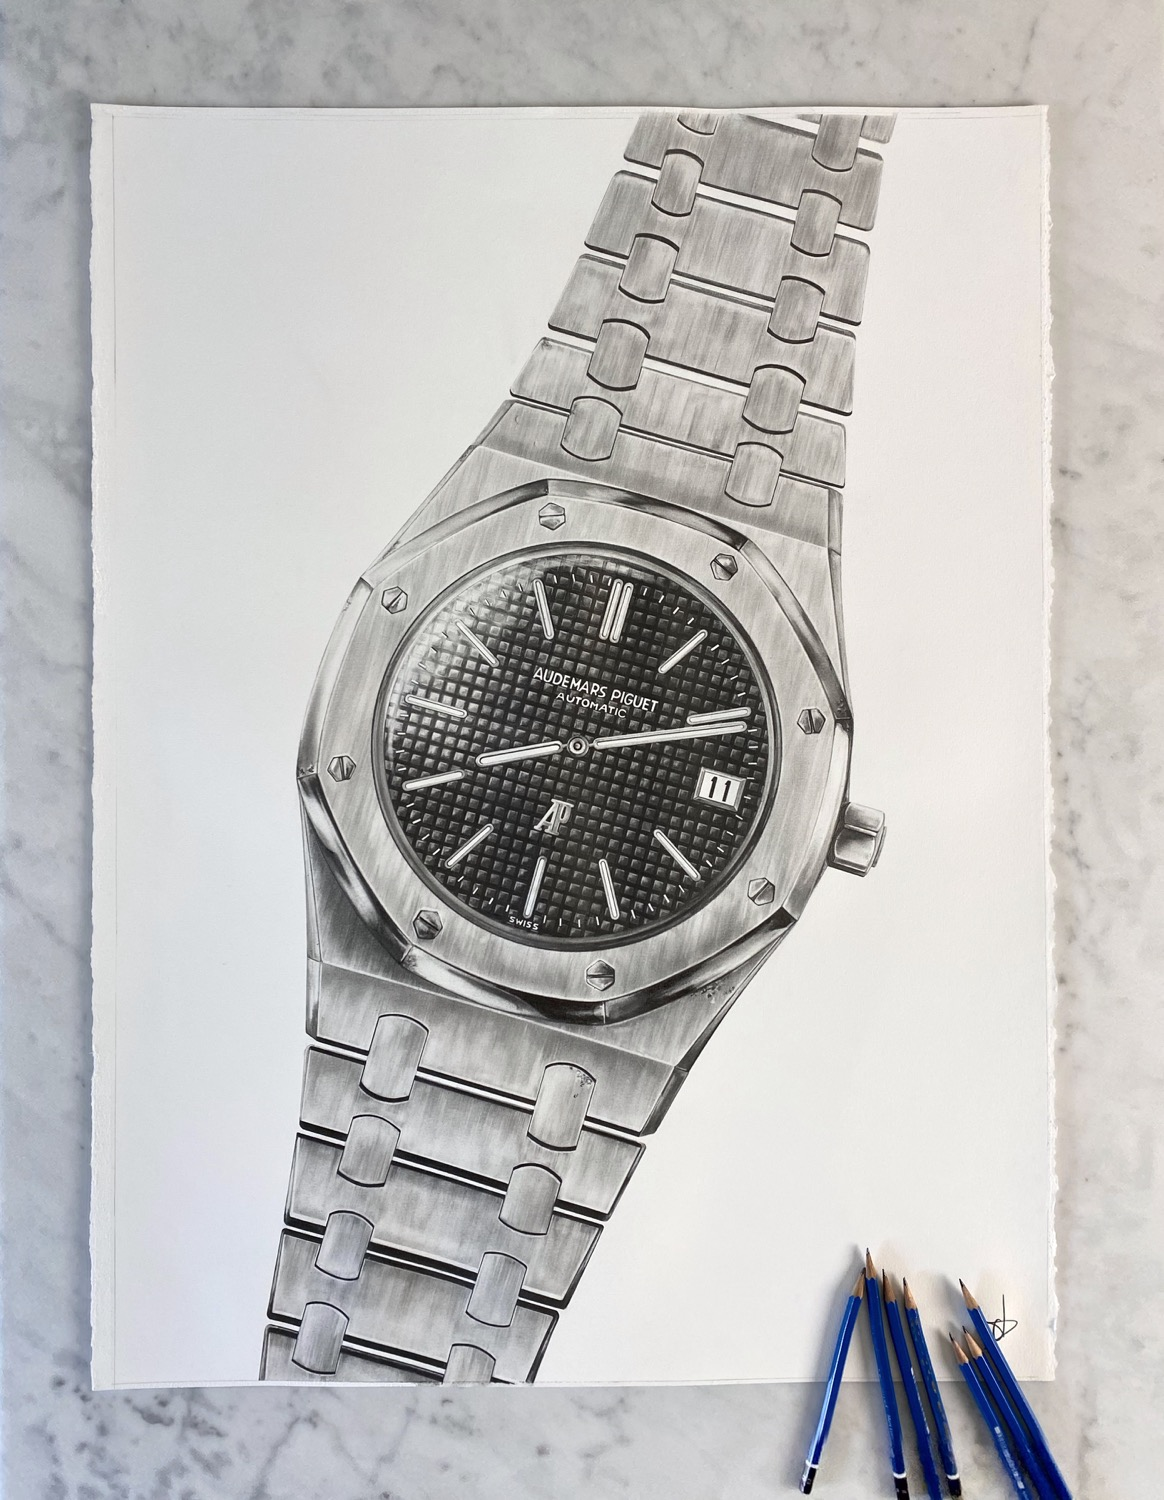 Thumbnail: Print Audemars Piguet Royal Oak réf. 5402